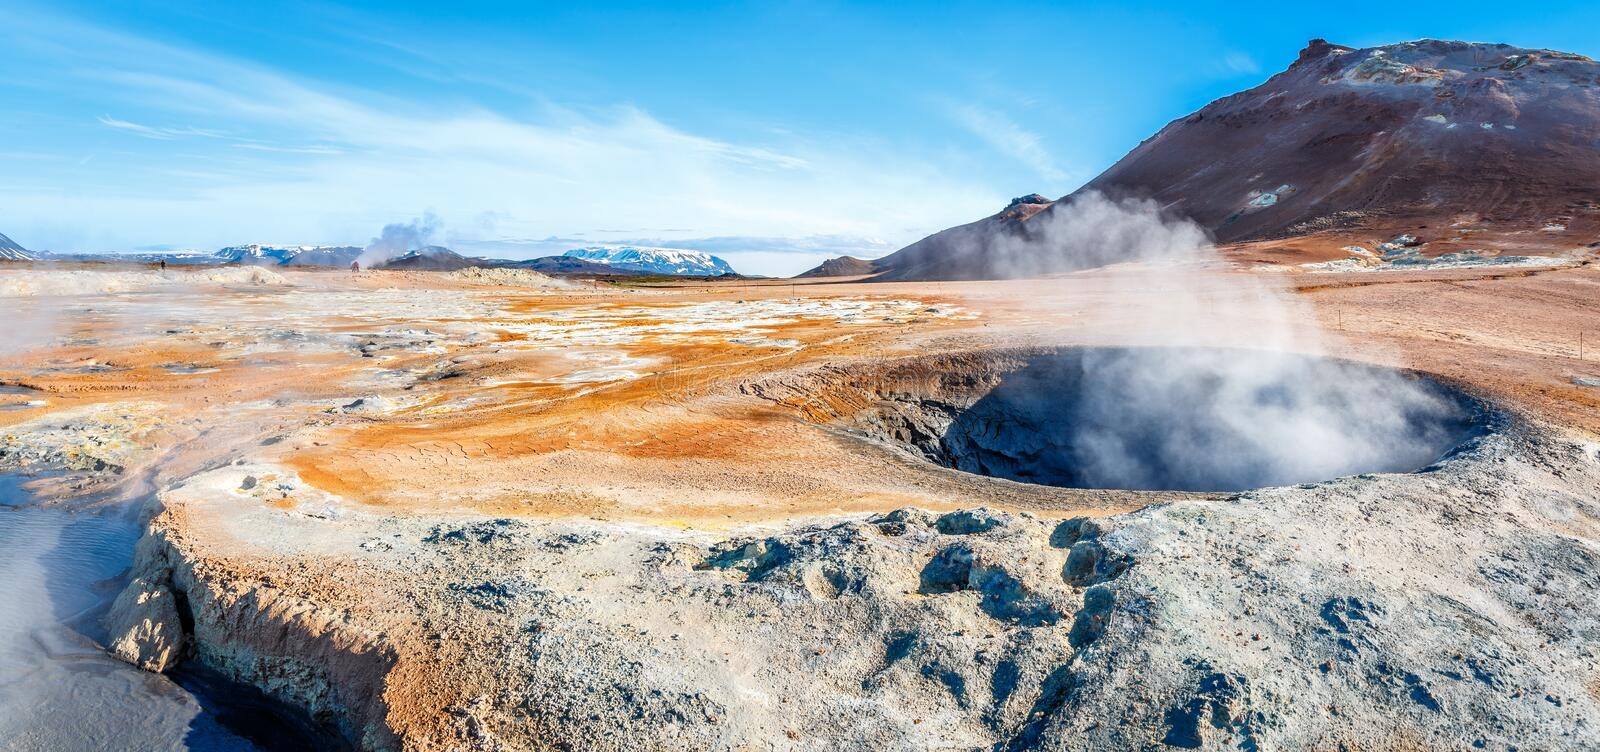 Geothermal field of Hverir, unique wasteland with pools of boiling mud, hot springs and hissing chimneys, Myvatn and royalty free stock photos